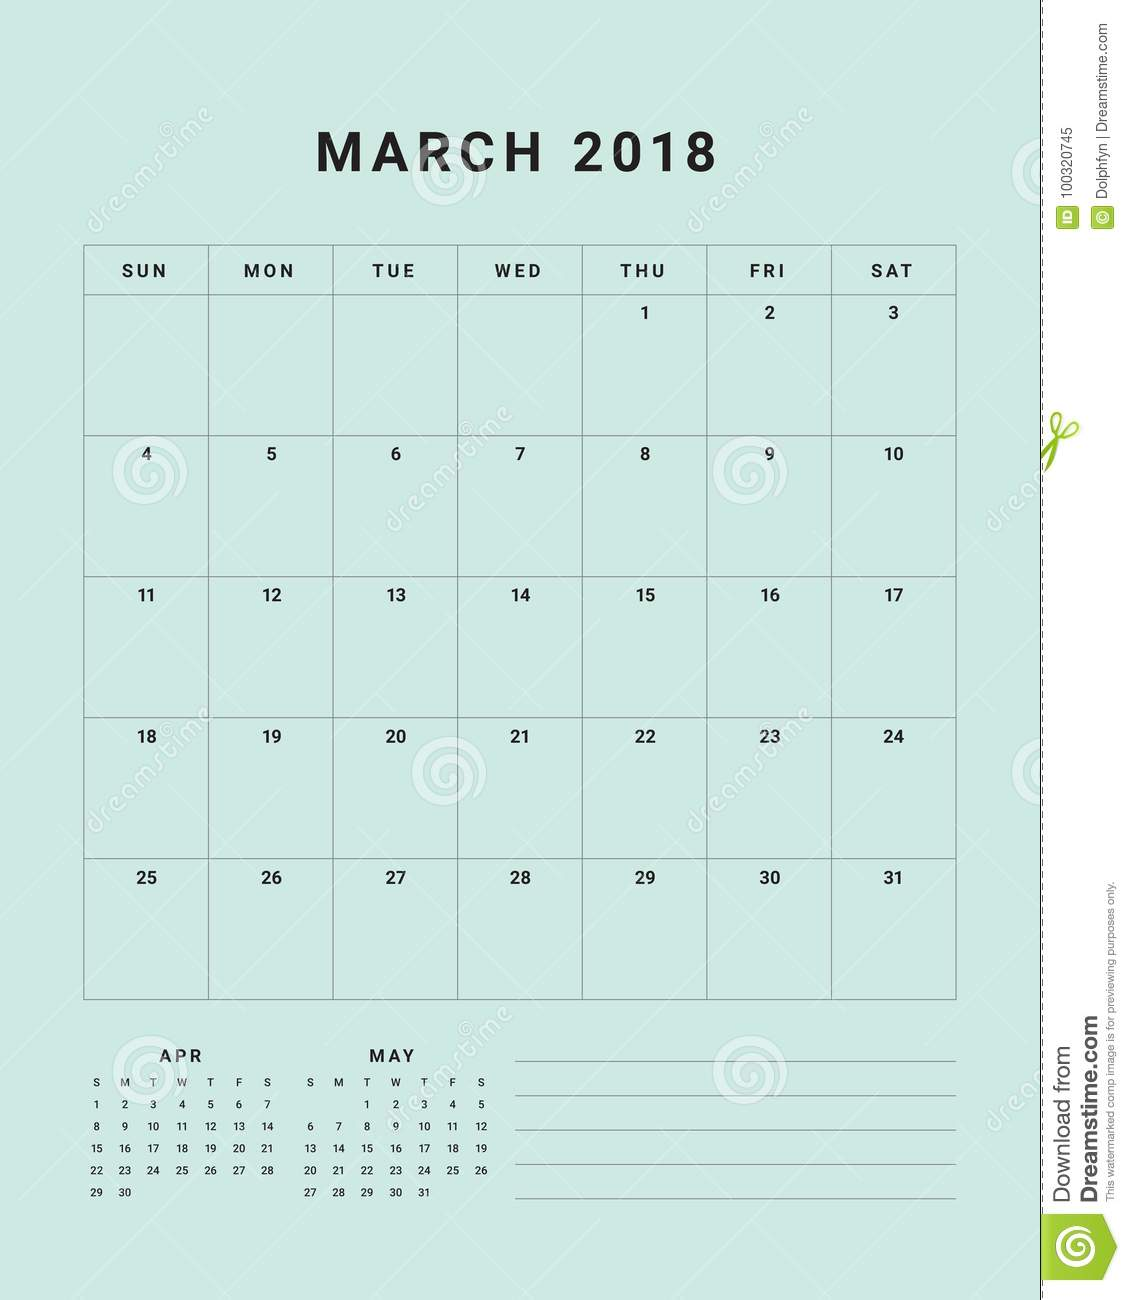 March 2018 desk calendar vector illustration